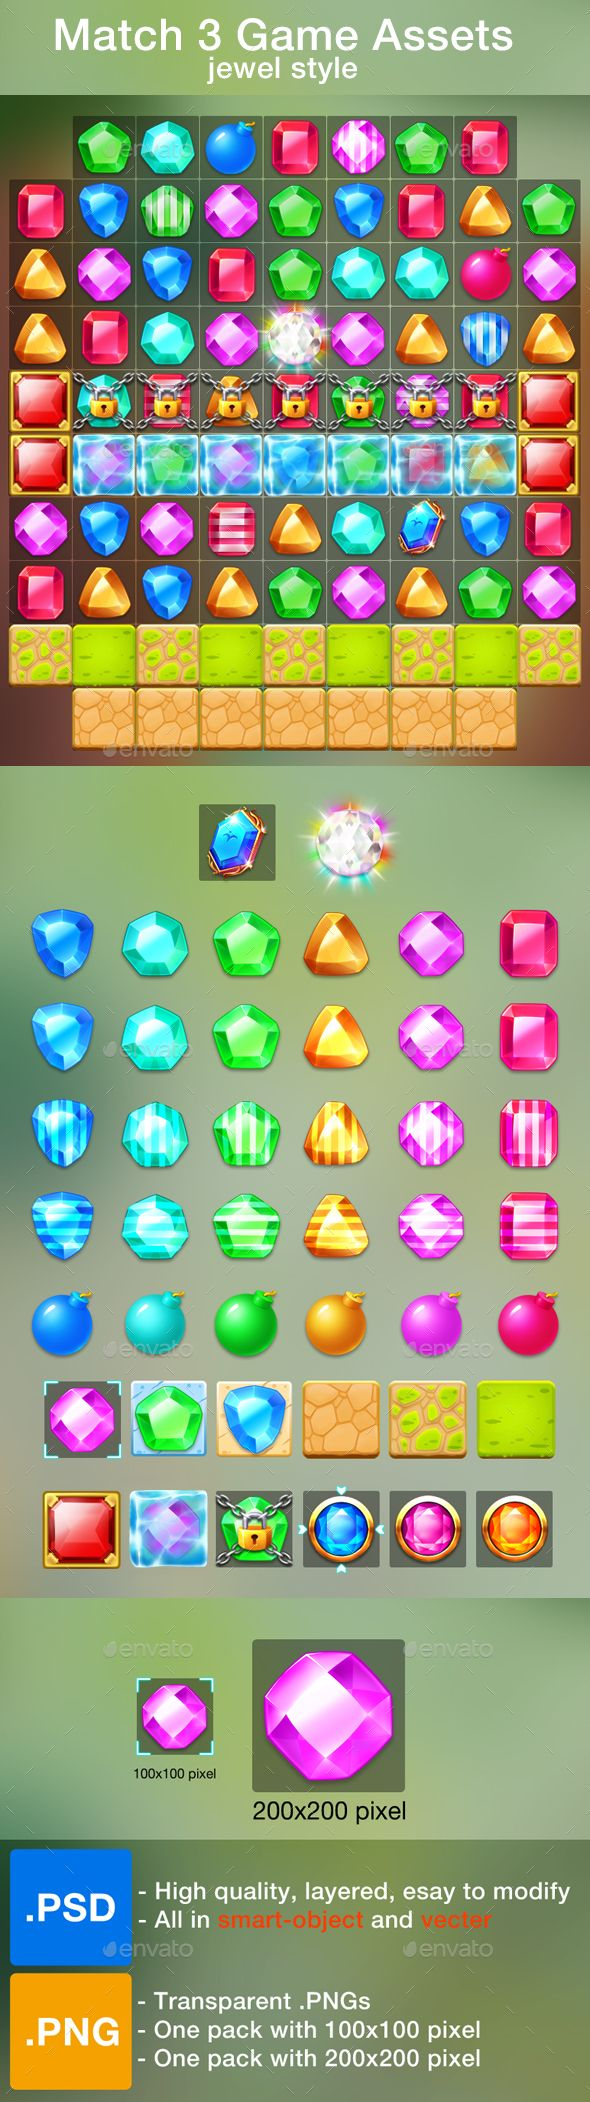 Match 3 Game Assets - All items needed for match 3 game in jewel style  - 6 different jewels with normal , bright , vertical and horizontal powered  - Included: 2 tiles , 4 kind of block , 2 kind locked ( lock and ice ) , 4 special items…  - All in high quality.